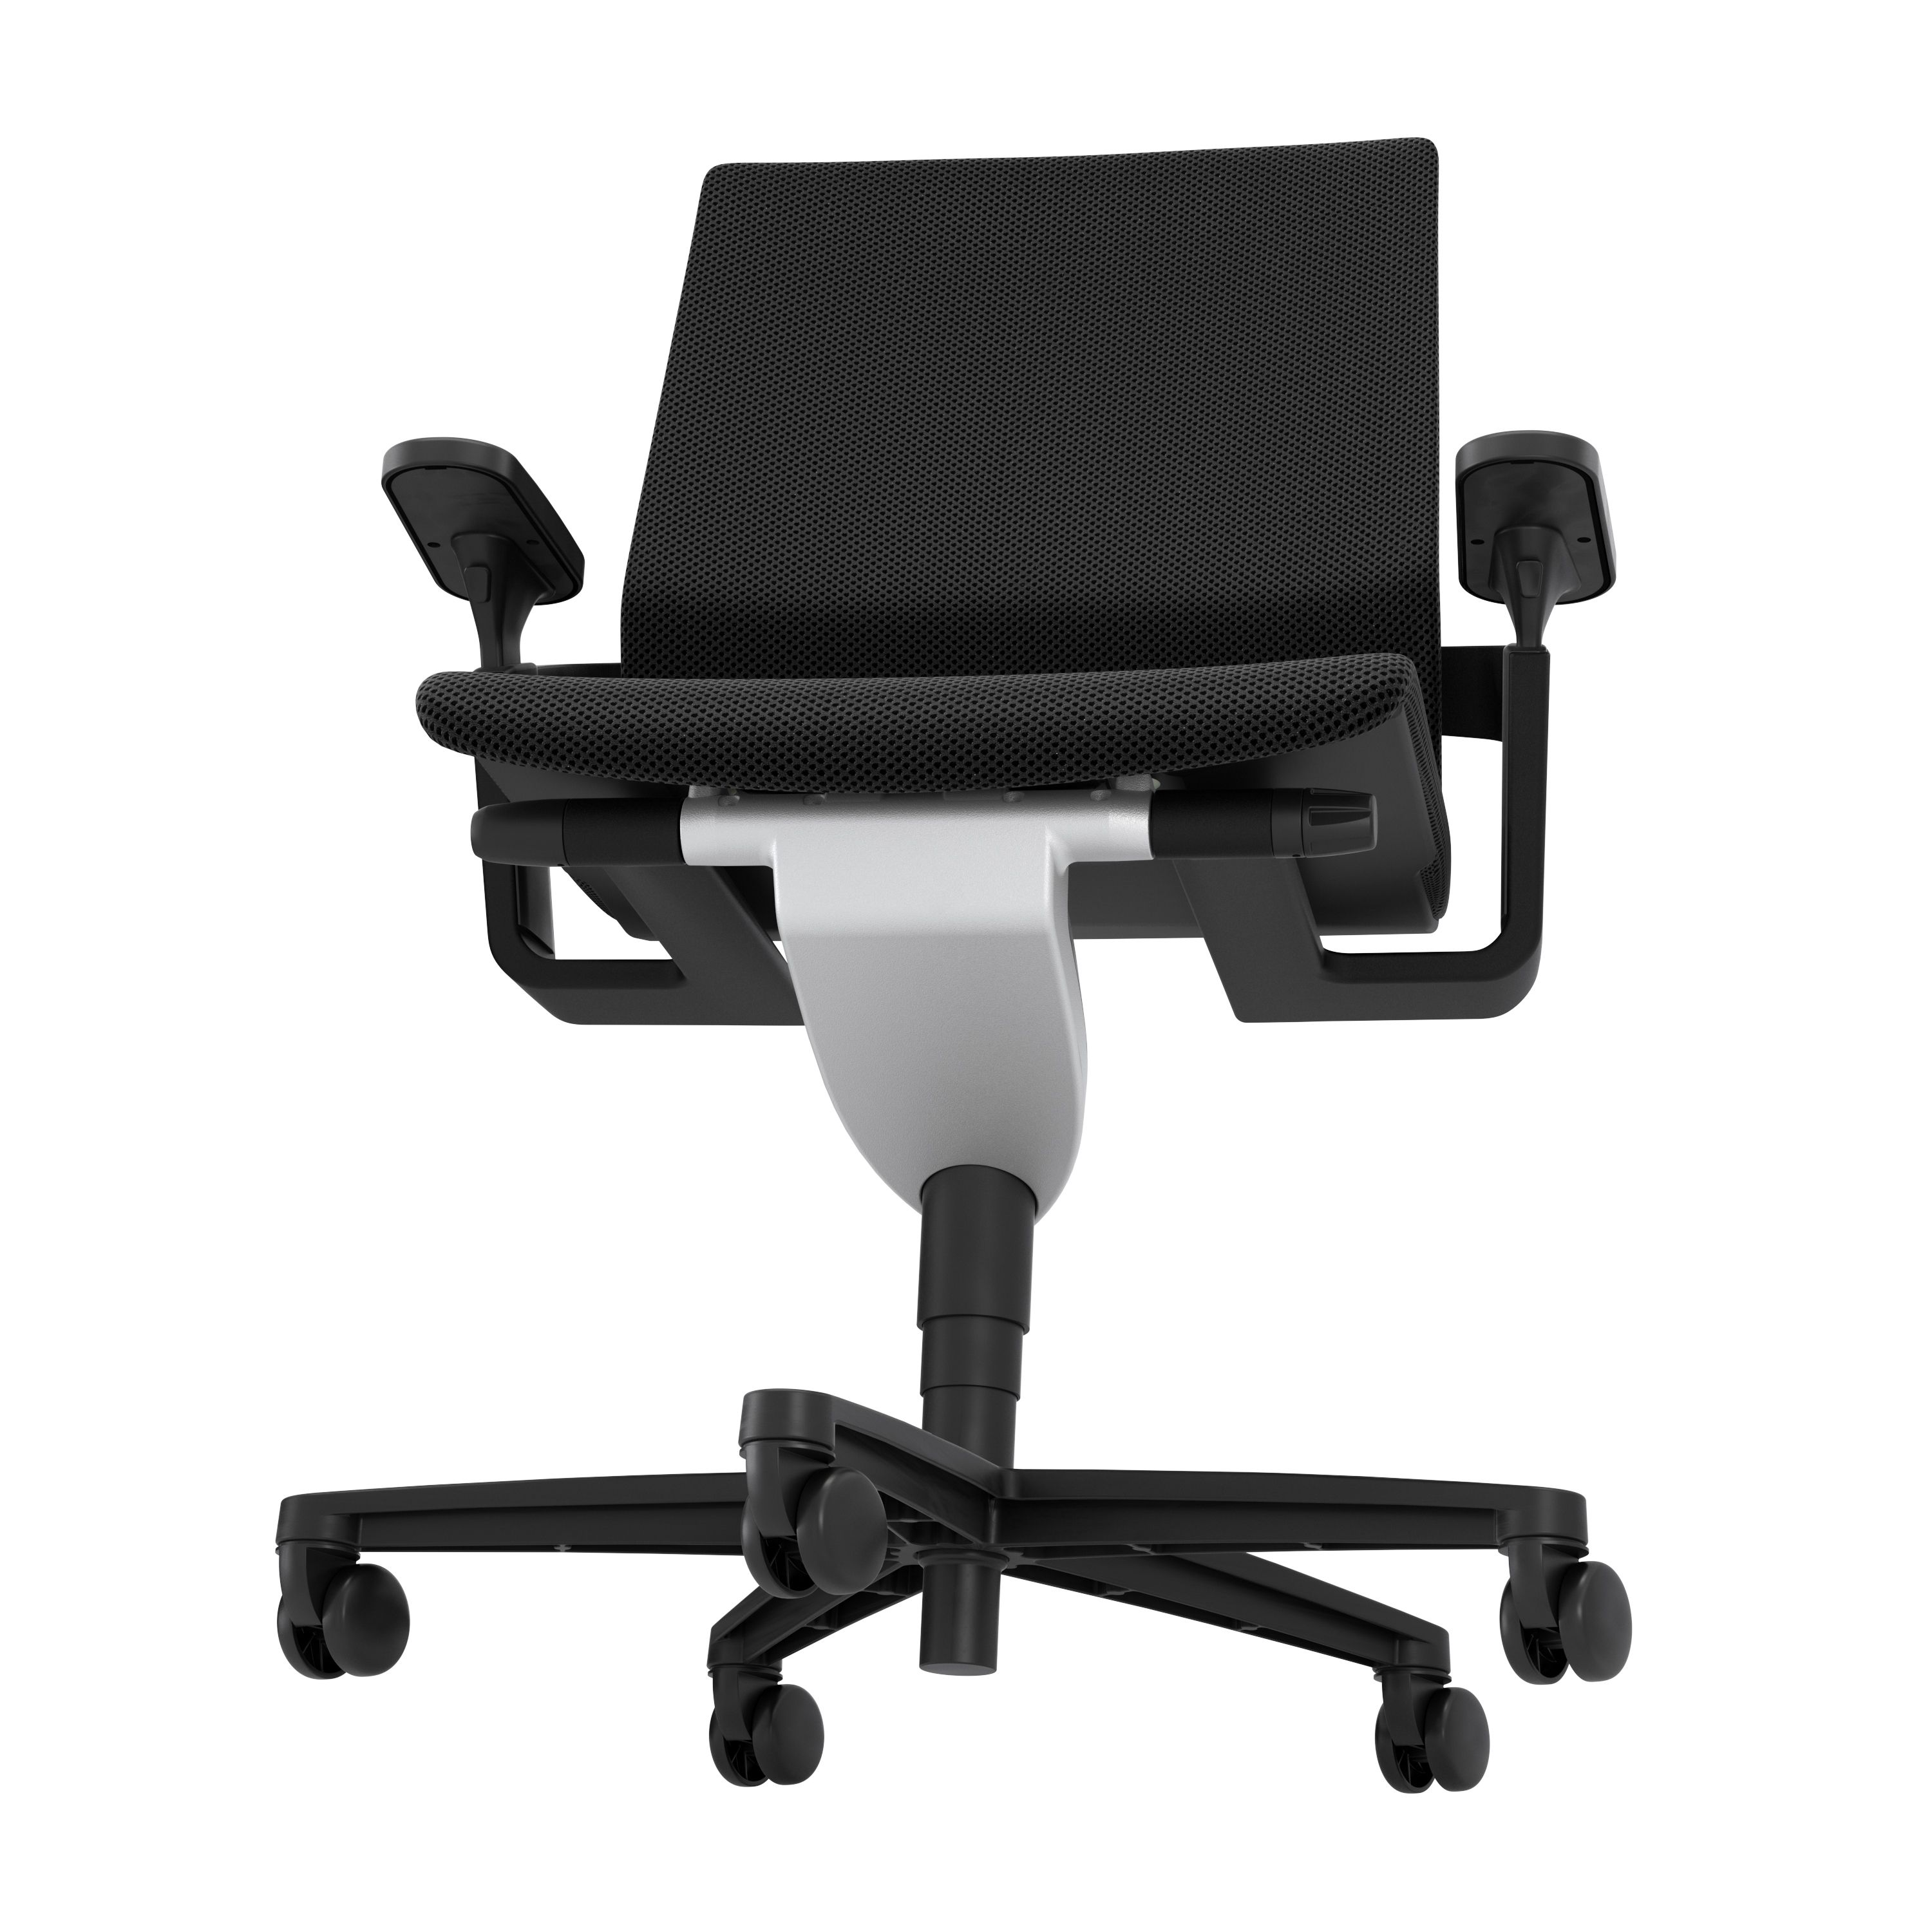 ON office chair with Trimension Black cover 3599 Three